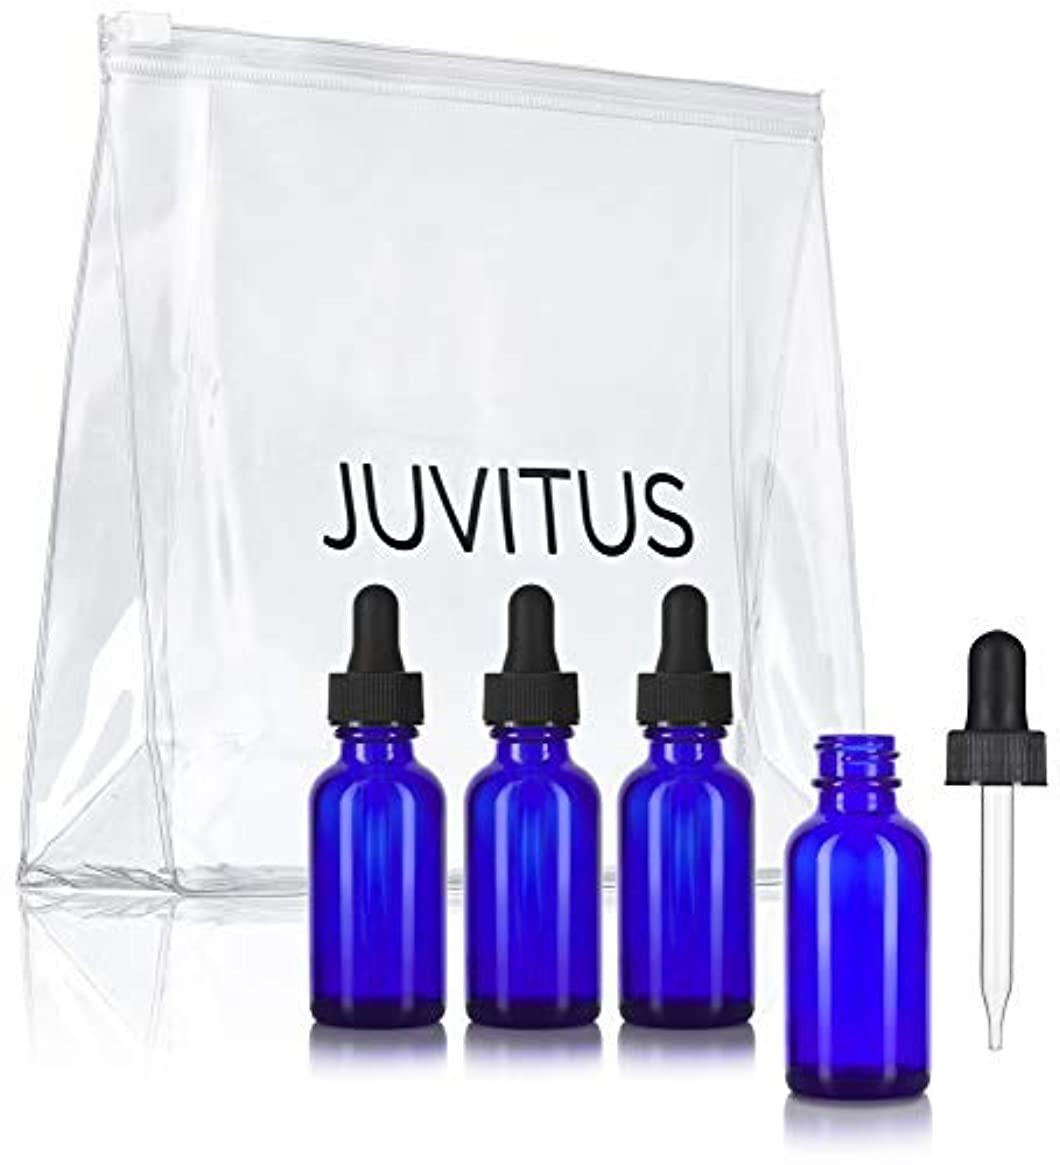 先生確保するアテンダントCobalt Blue Glass Boston Round Dropper Bottle - 1 oz (4 Pack) + Clear Travel Bag for Essential Oils, Aromatherapy...